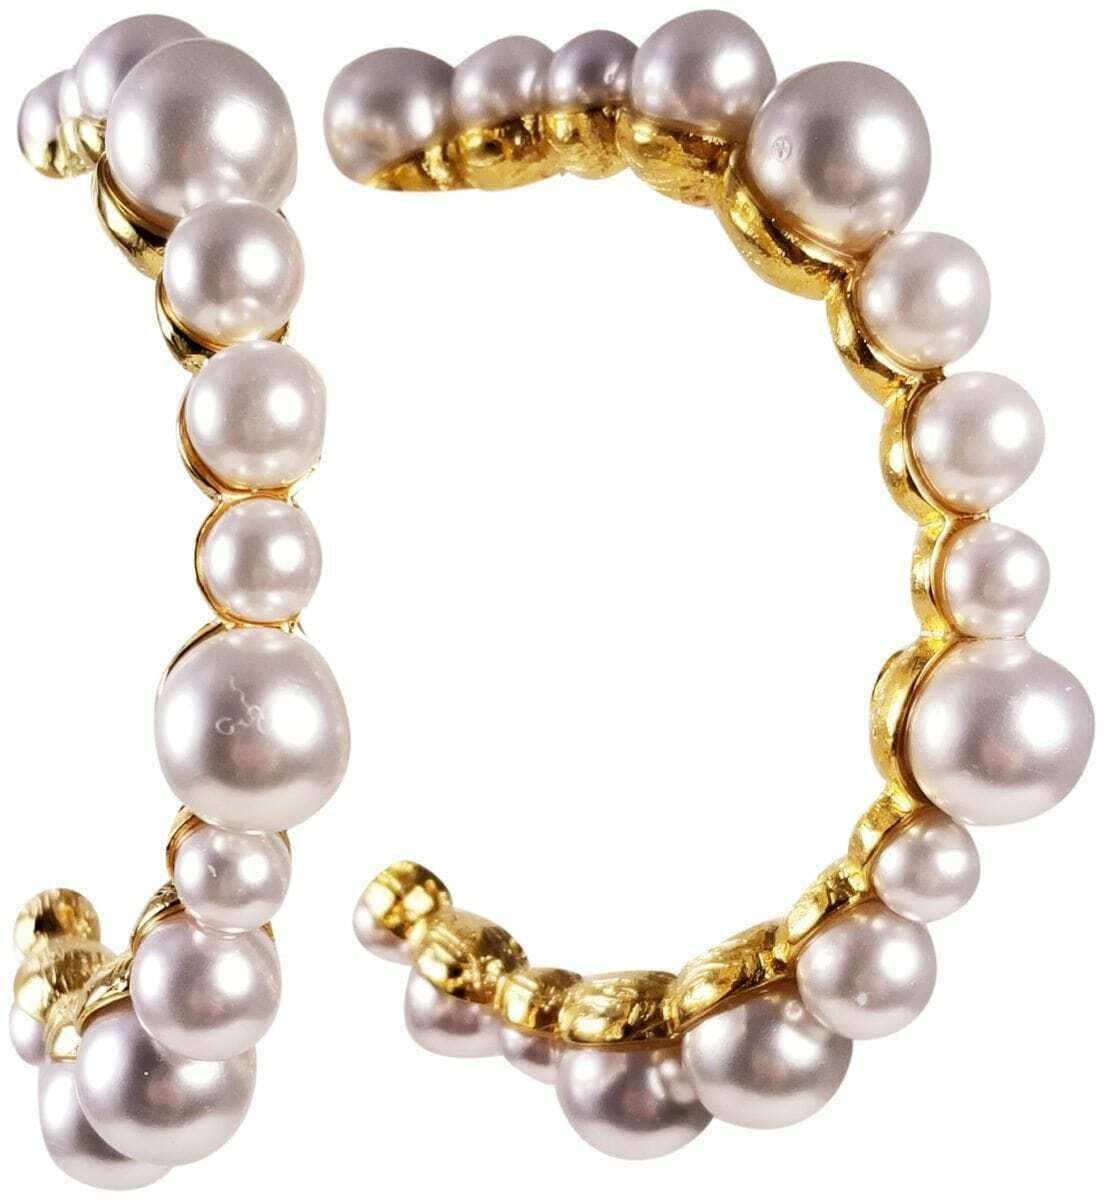 KENNETH JAY LANE, MULTI PEARL gold HOOP EARRING, 2.5  INCHES